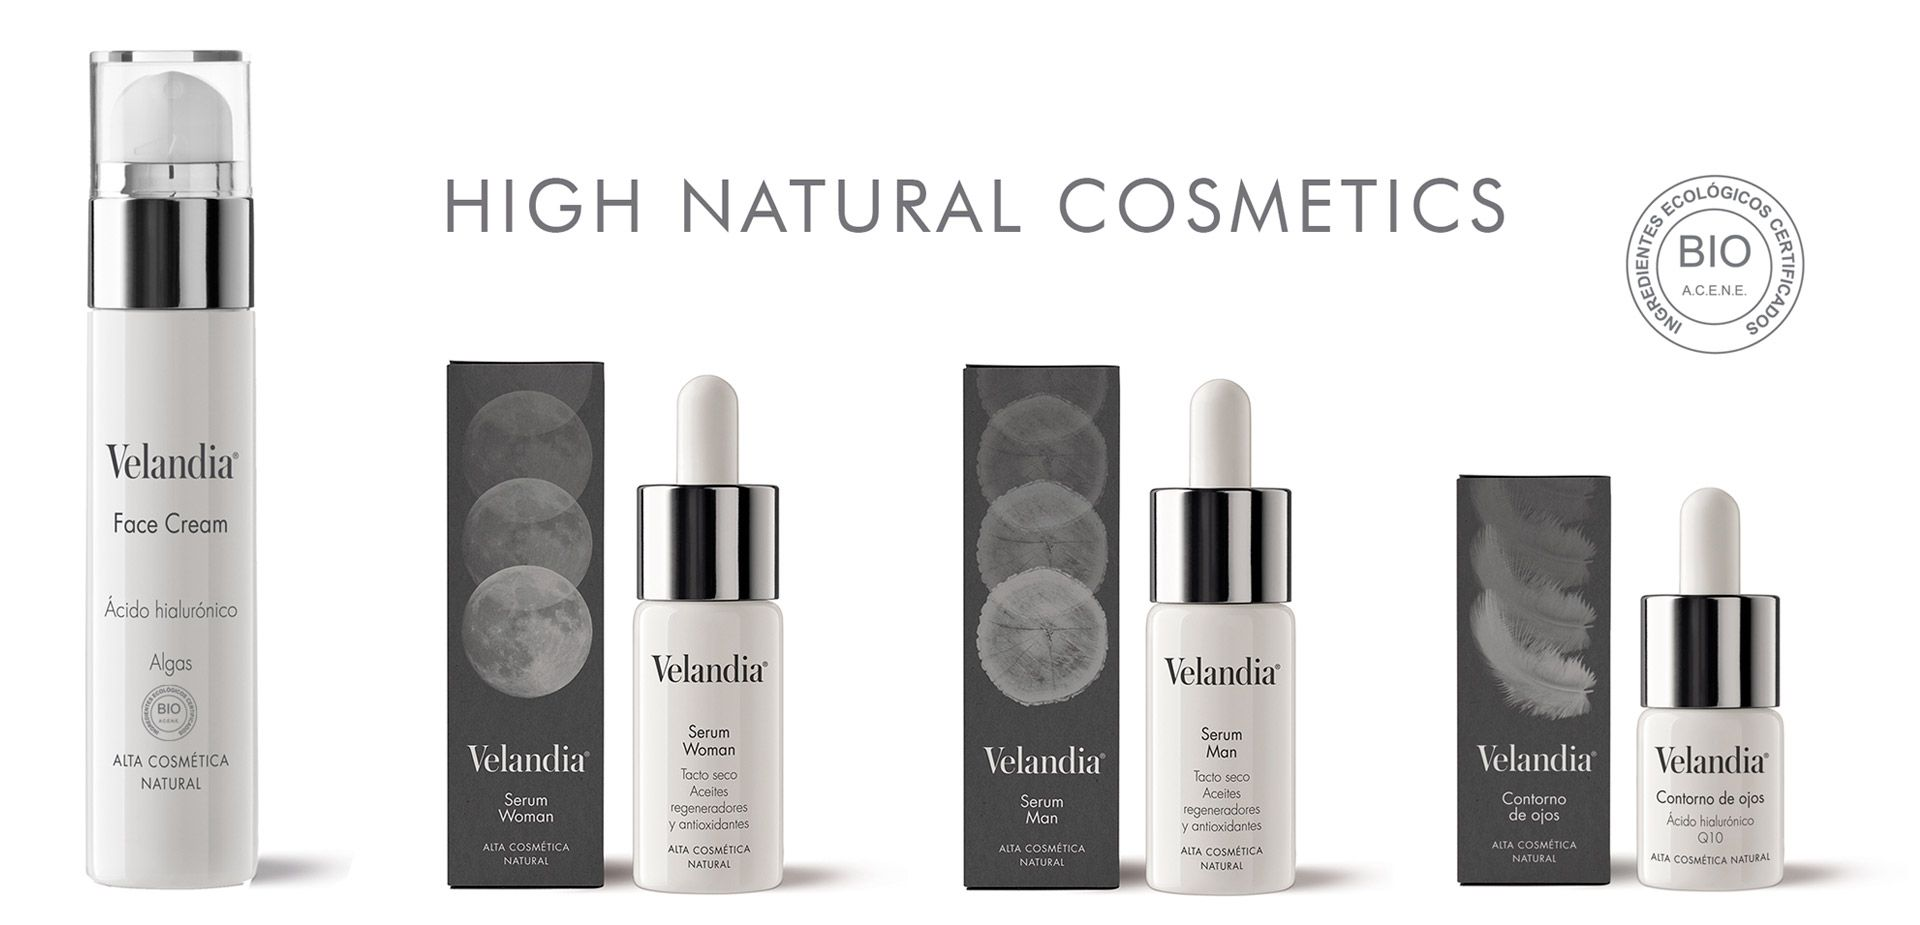 High Natural Cosmetics